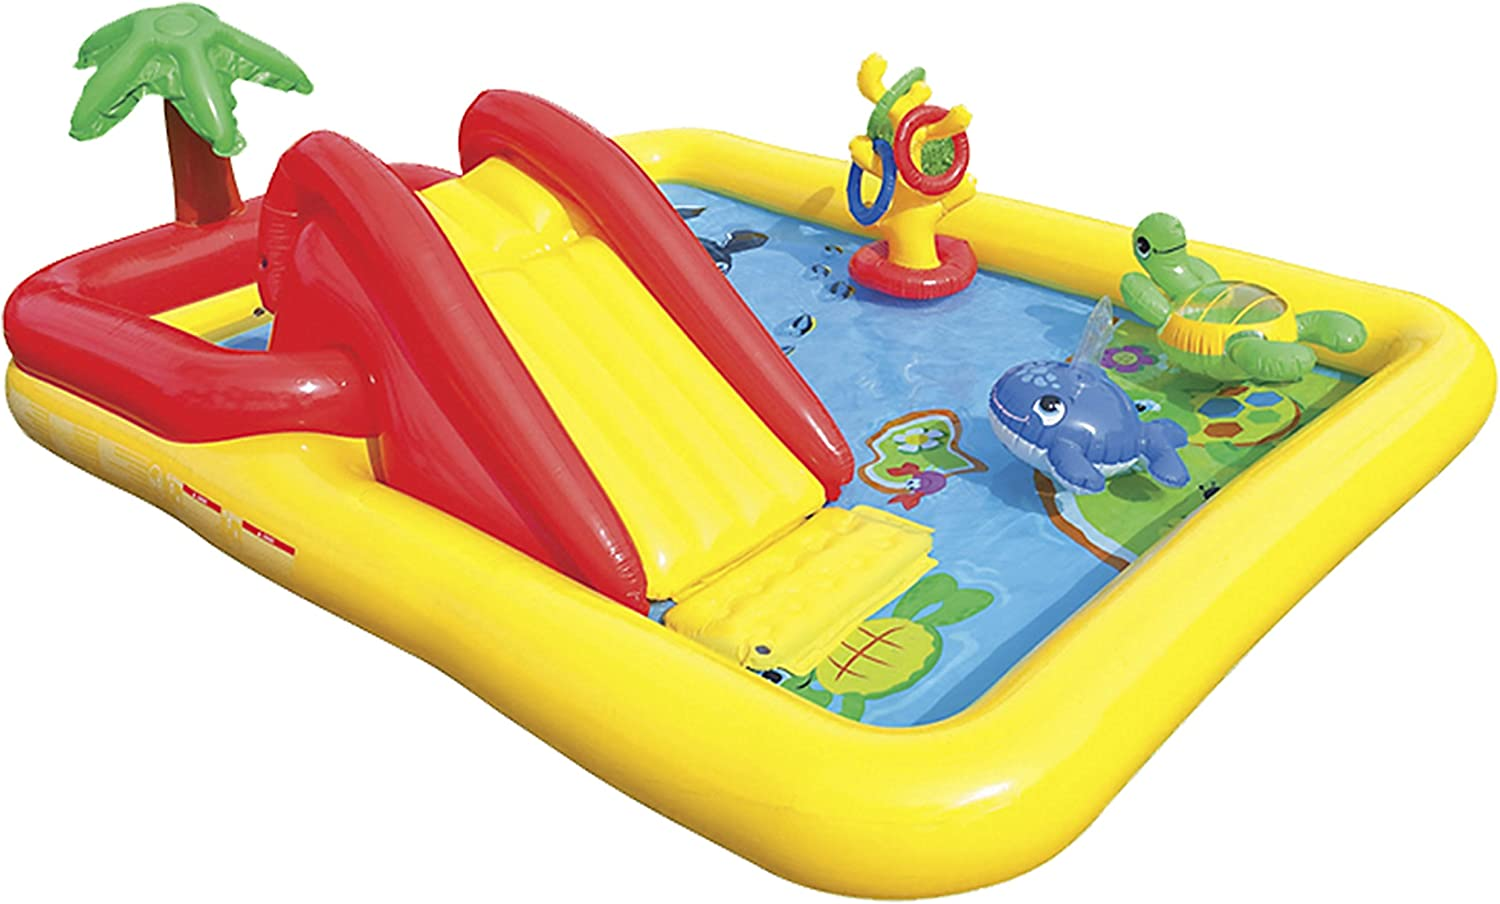 Top 11 Best Water Slide Pools Inflatable (2020 Reviews) 11